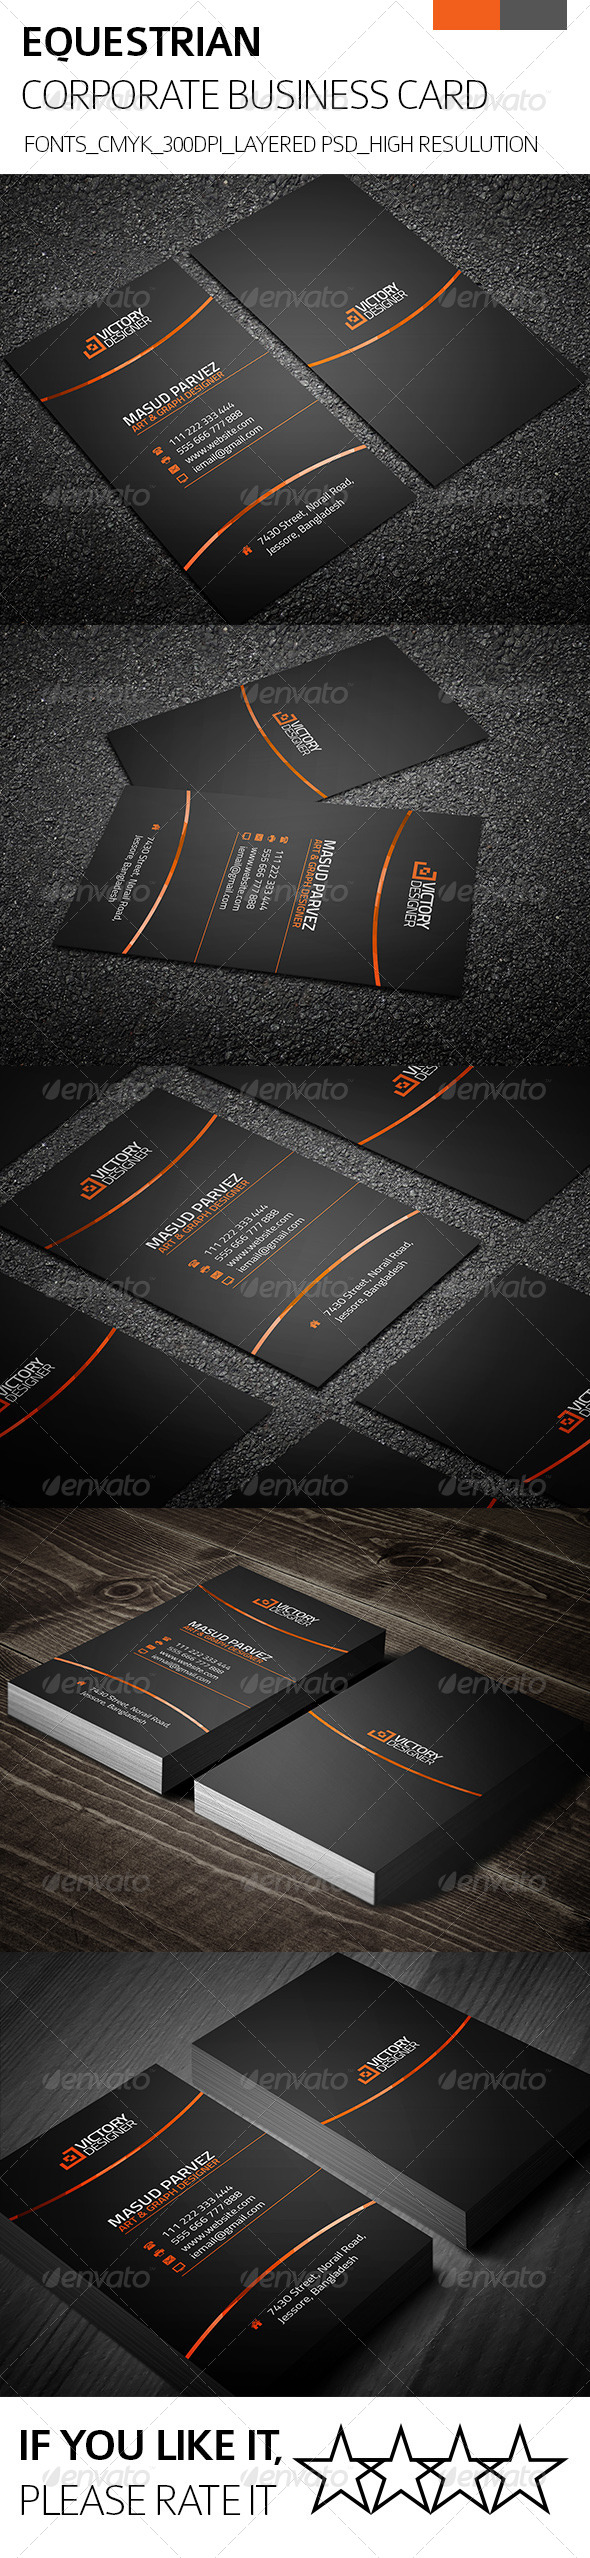 Equestrian & Corporate Business Card - Corporate Business Cards